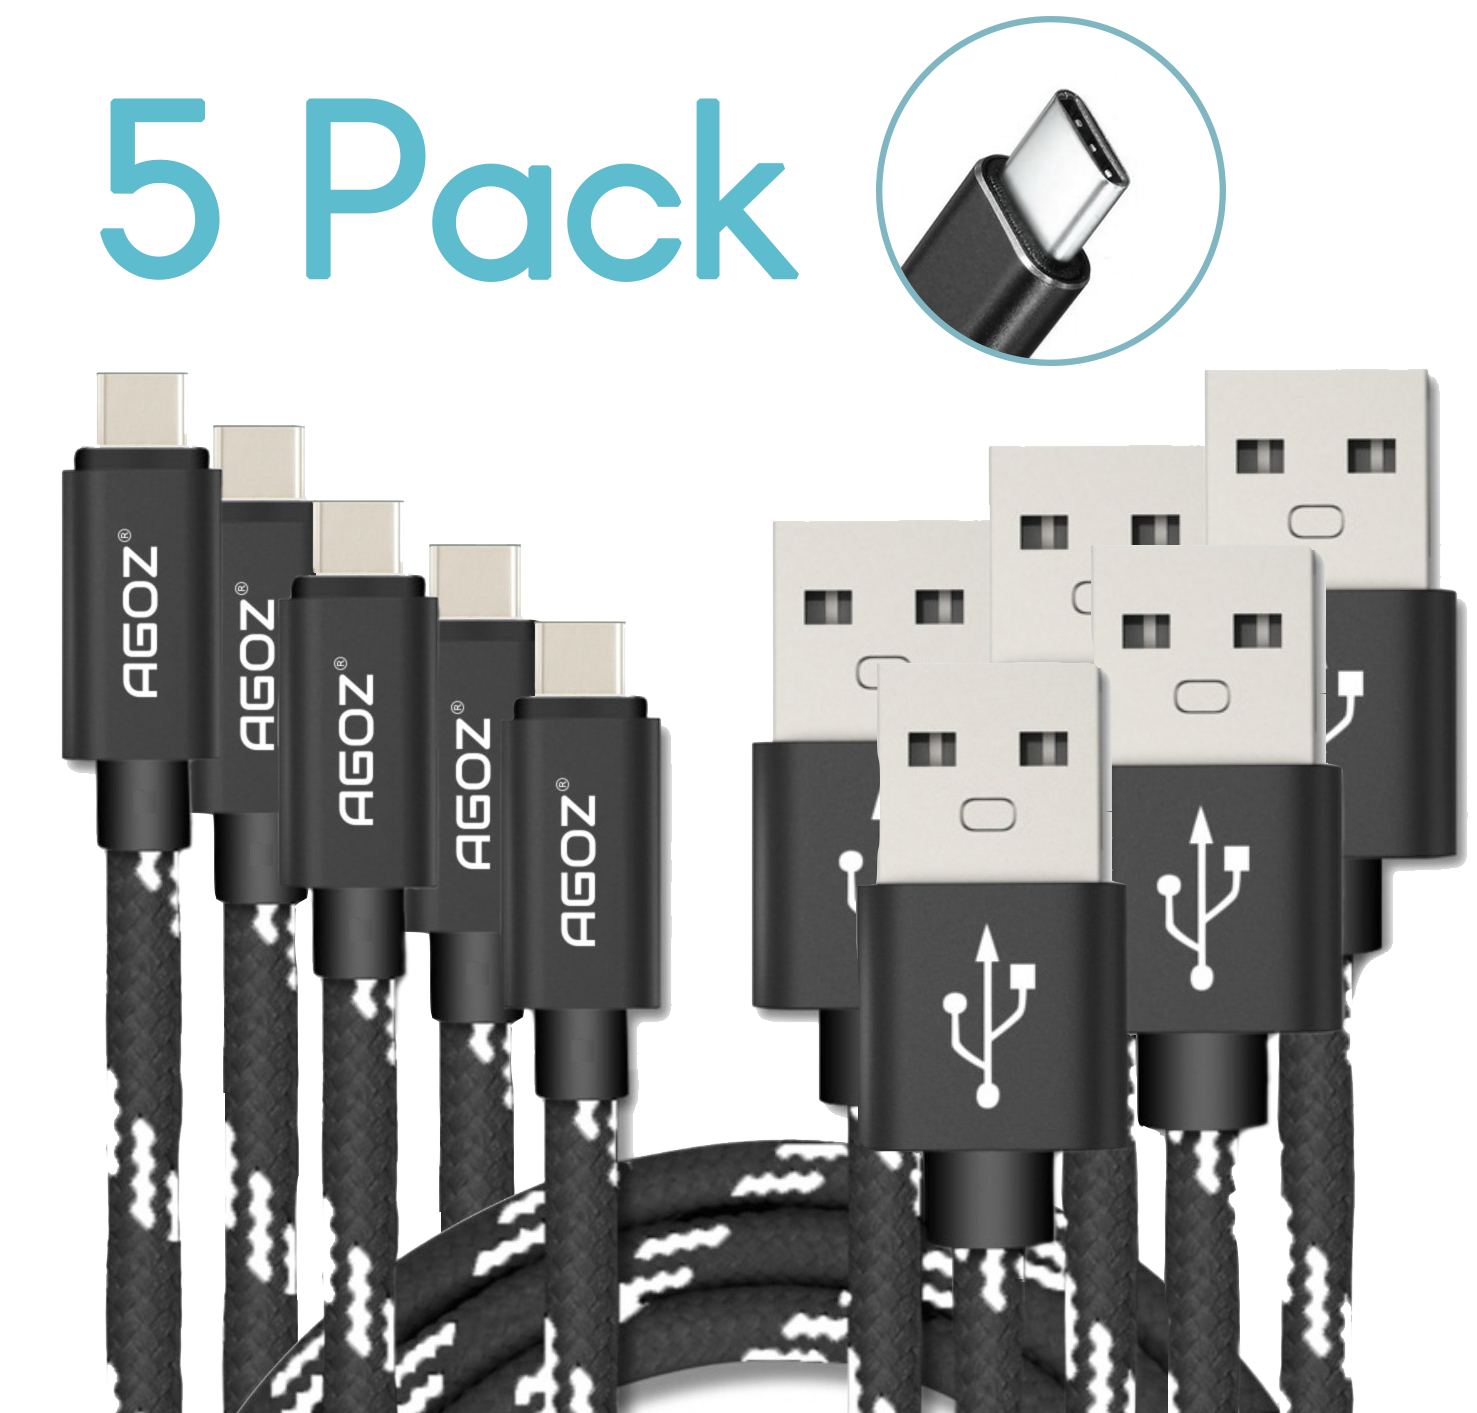 5 Pack Type-C USB-C Fast Charge Data Sync Cable for Samsung